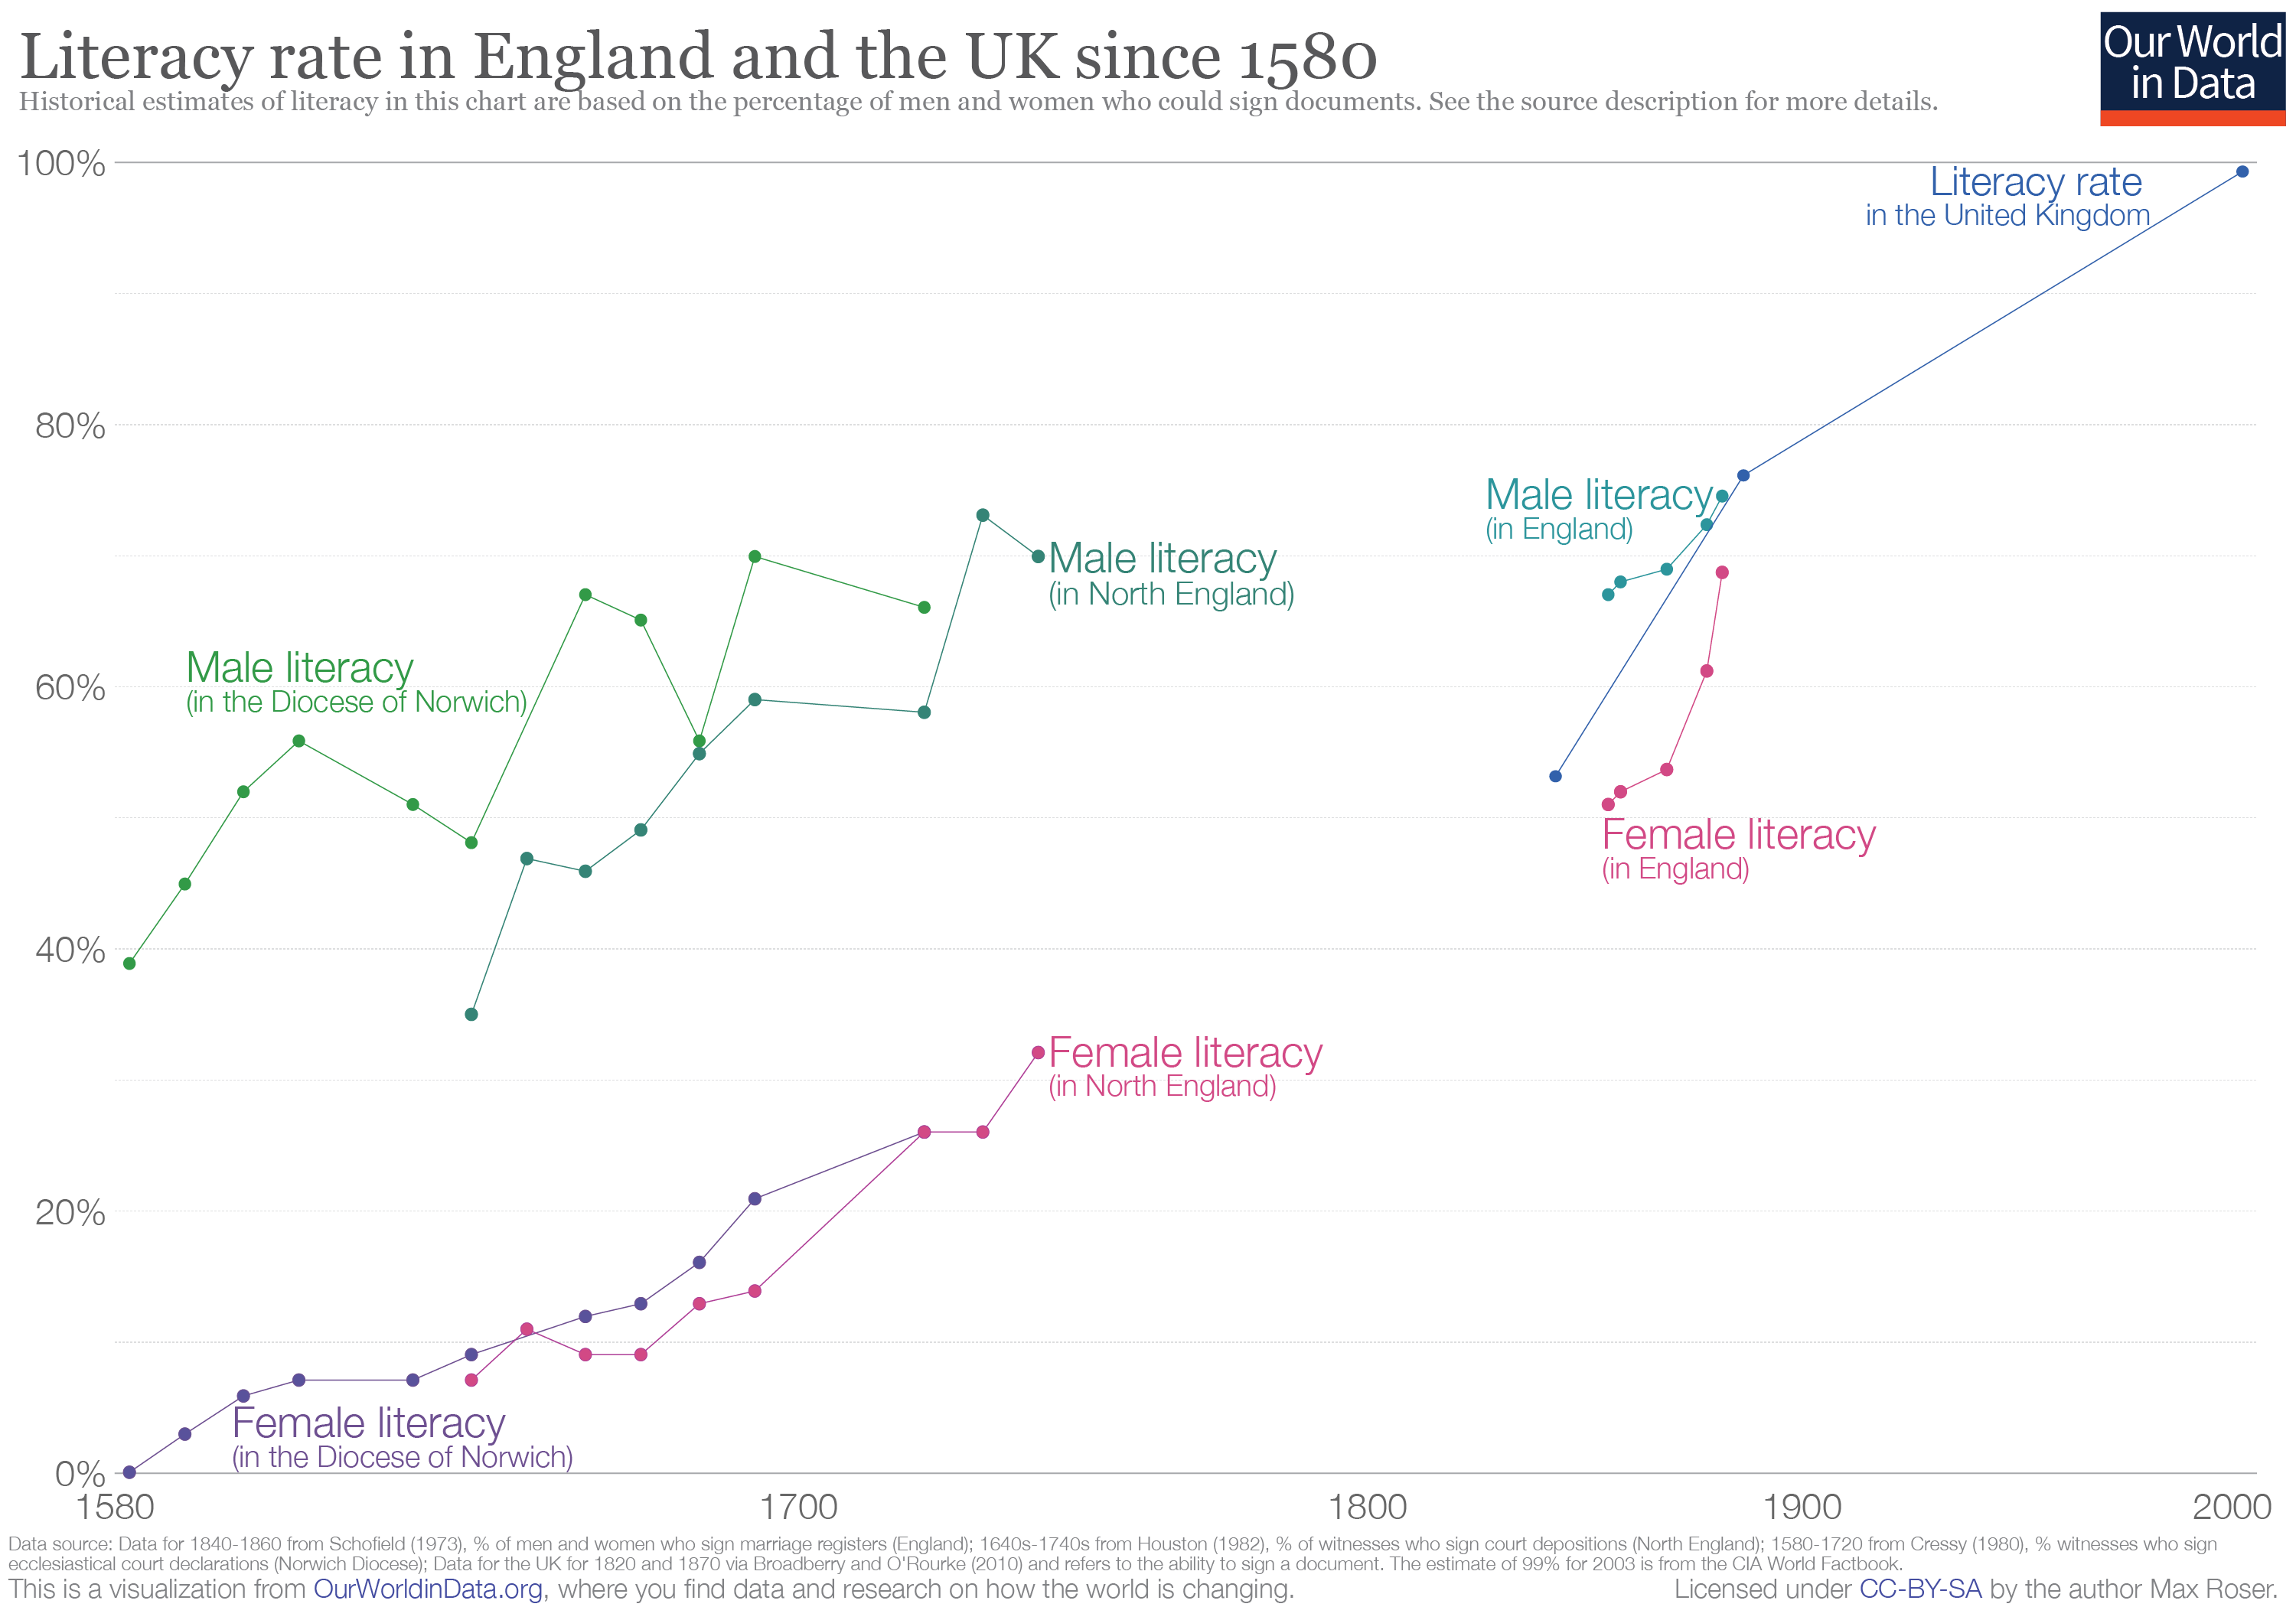 Graph of literacy in England over time